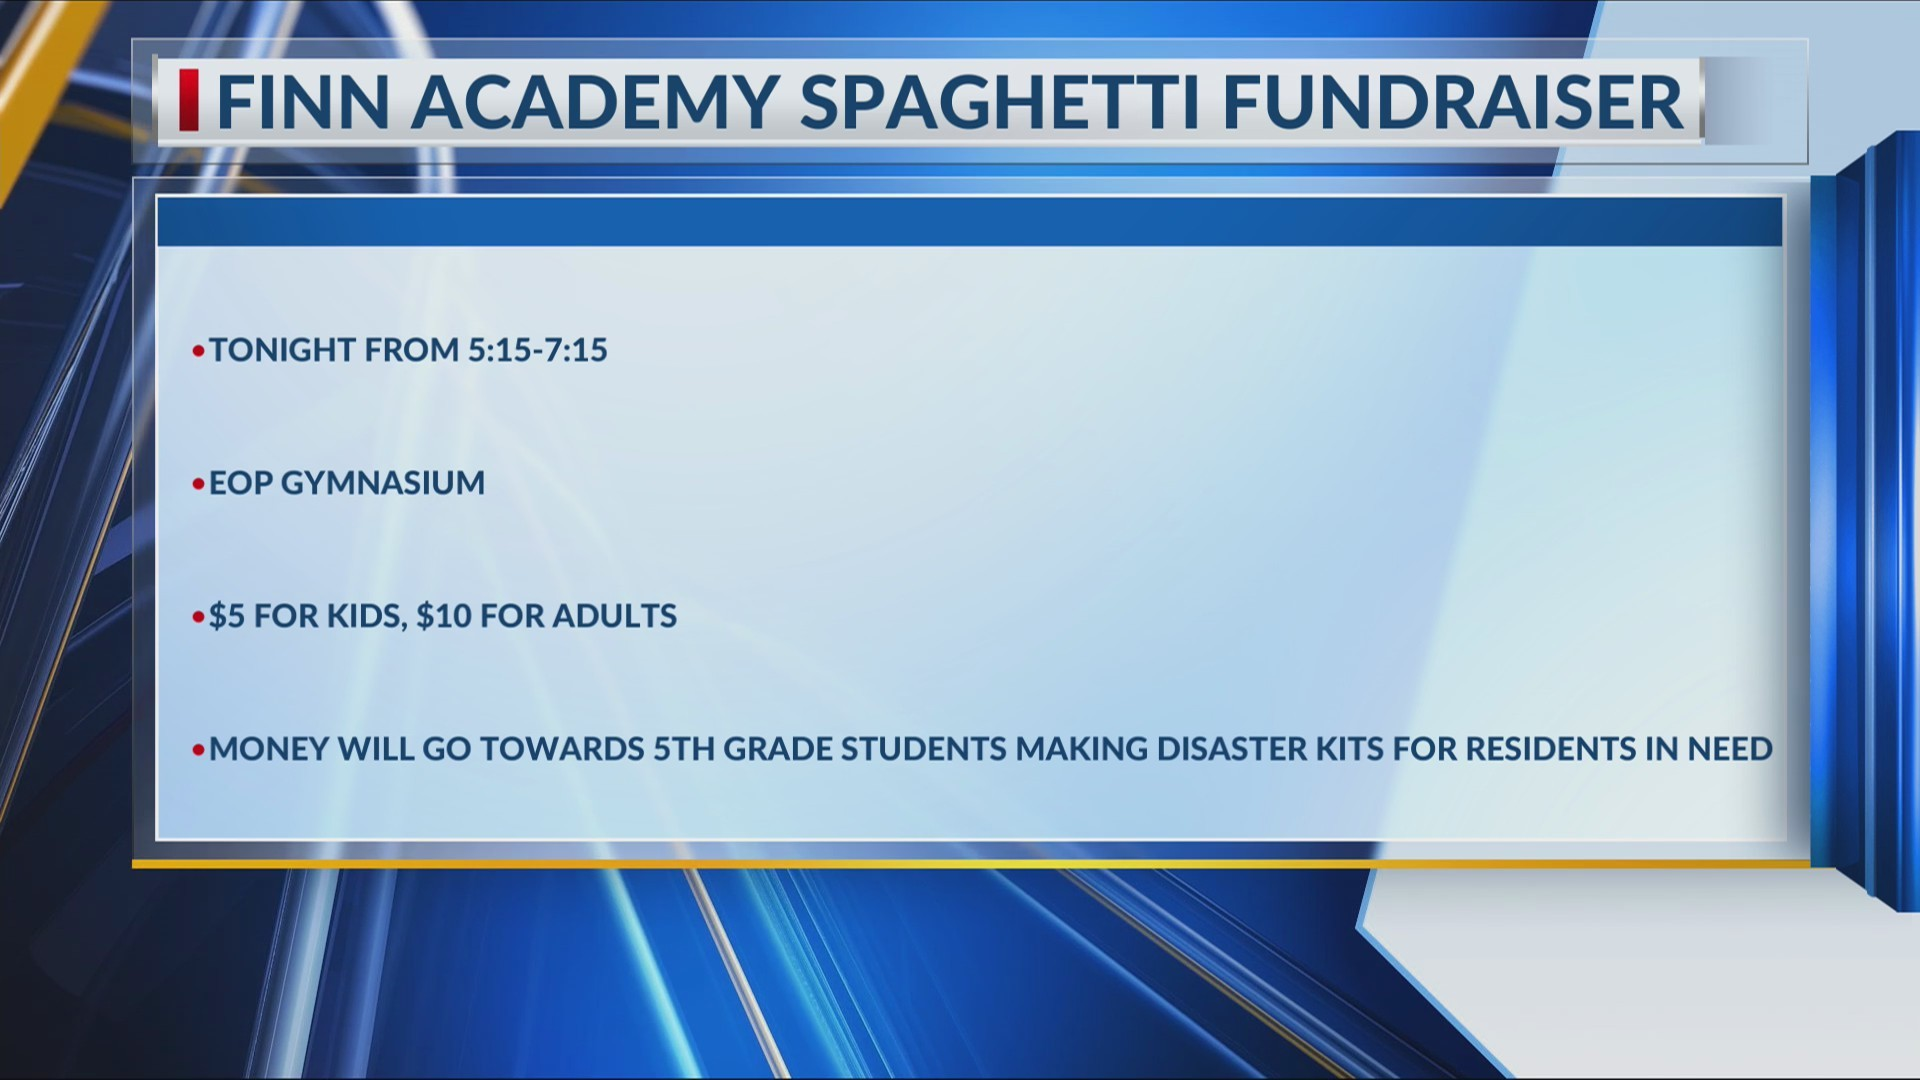 Finn Academy 5th graders raising money to create disaster kits